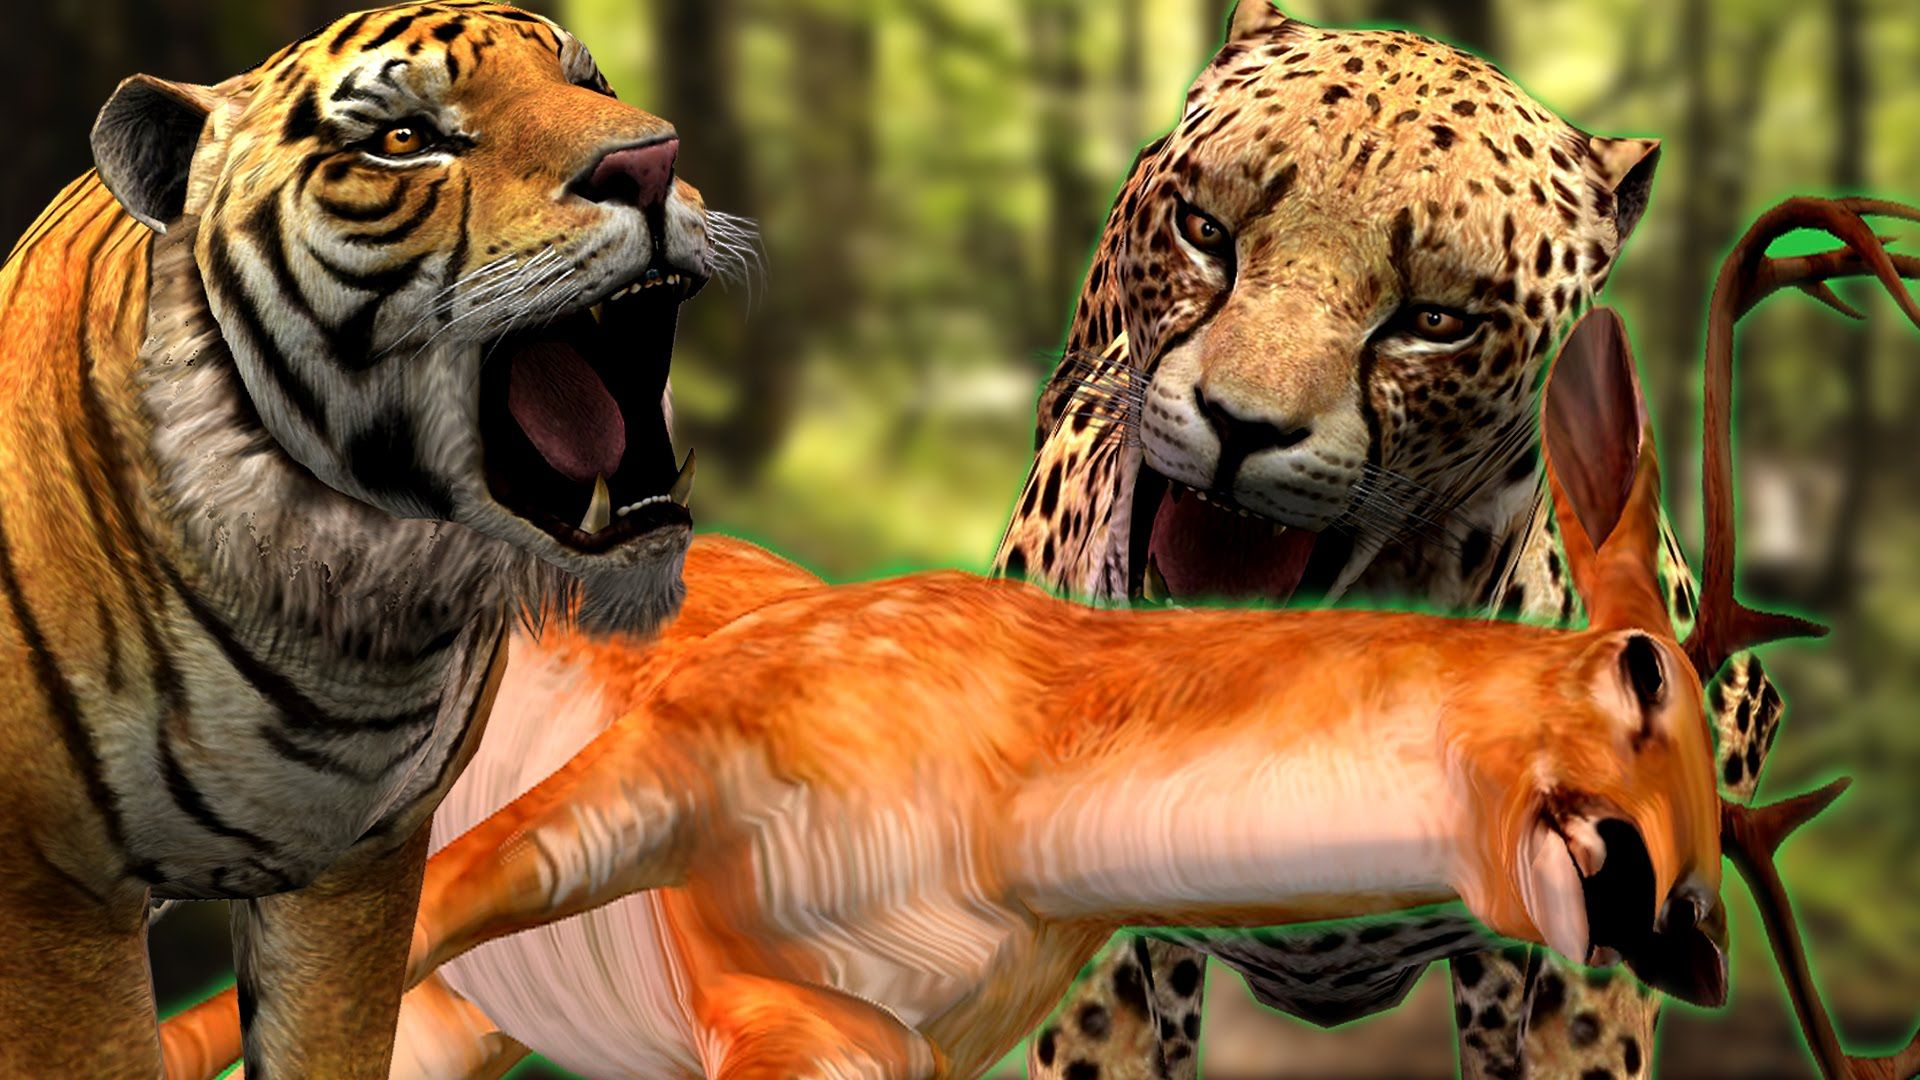 cheetah hunting deer hungry tiger vs cheetah cartoon animal